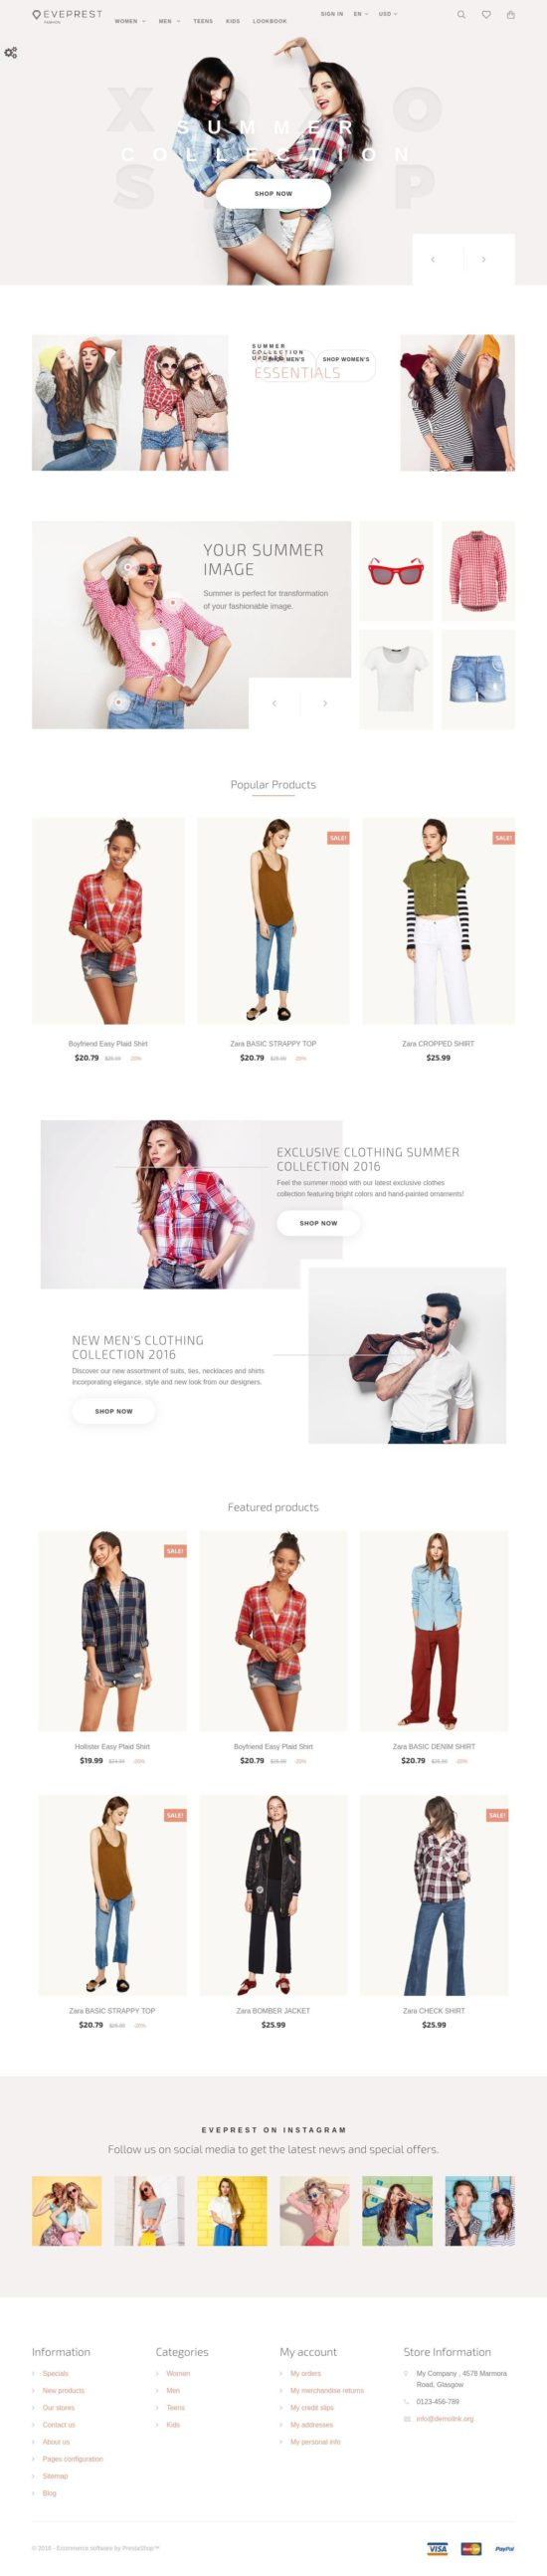 eveprest-templatemonster-prestashop-theme-01